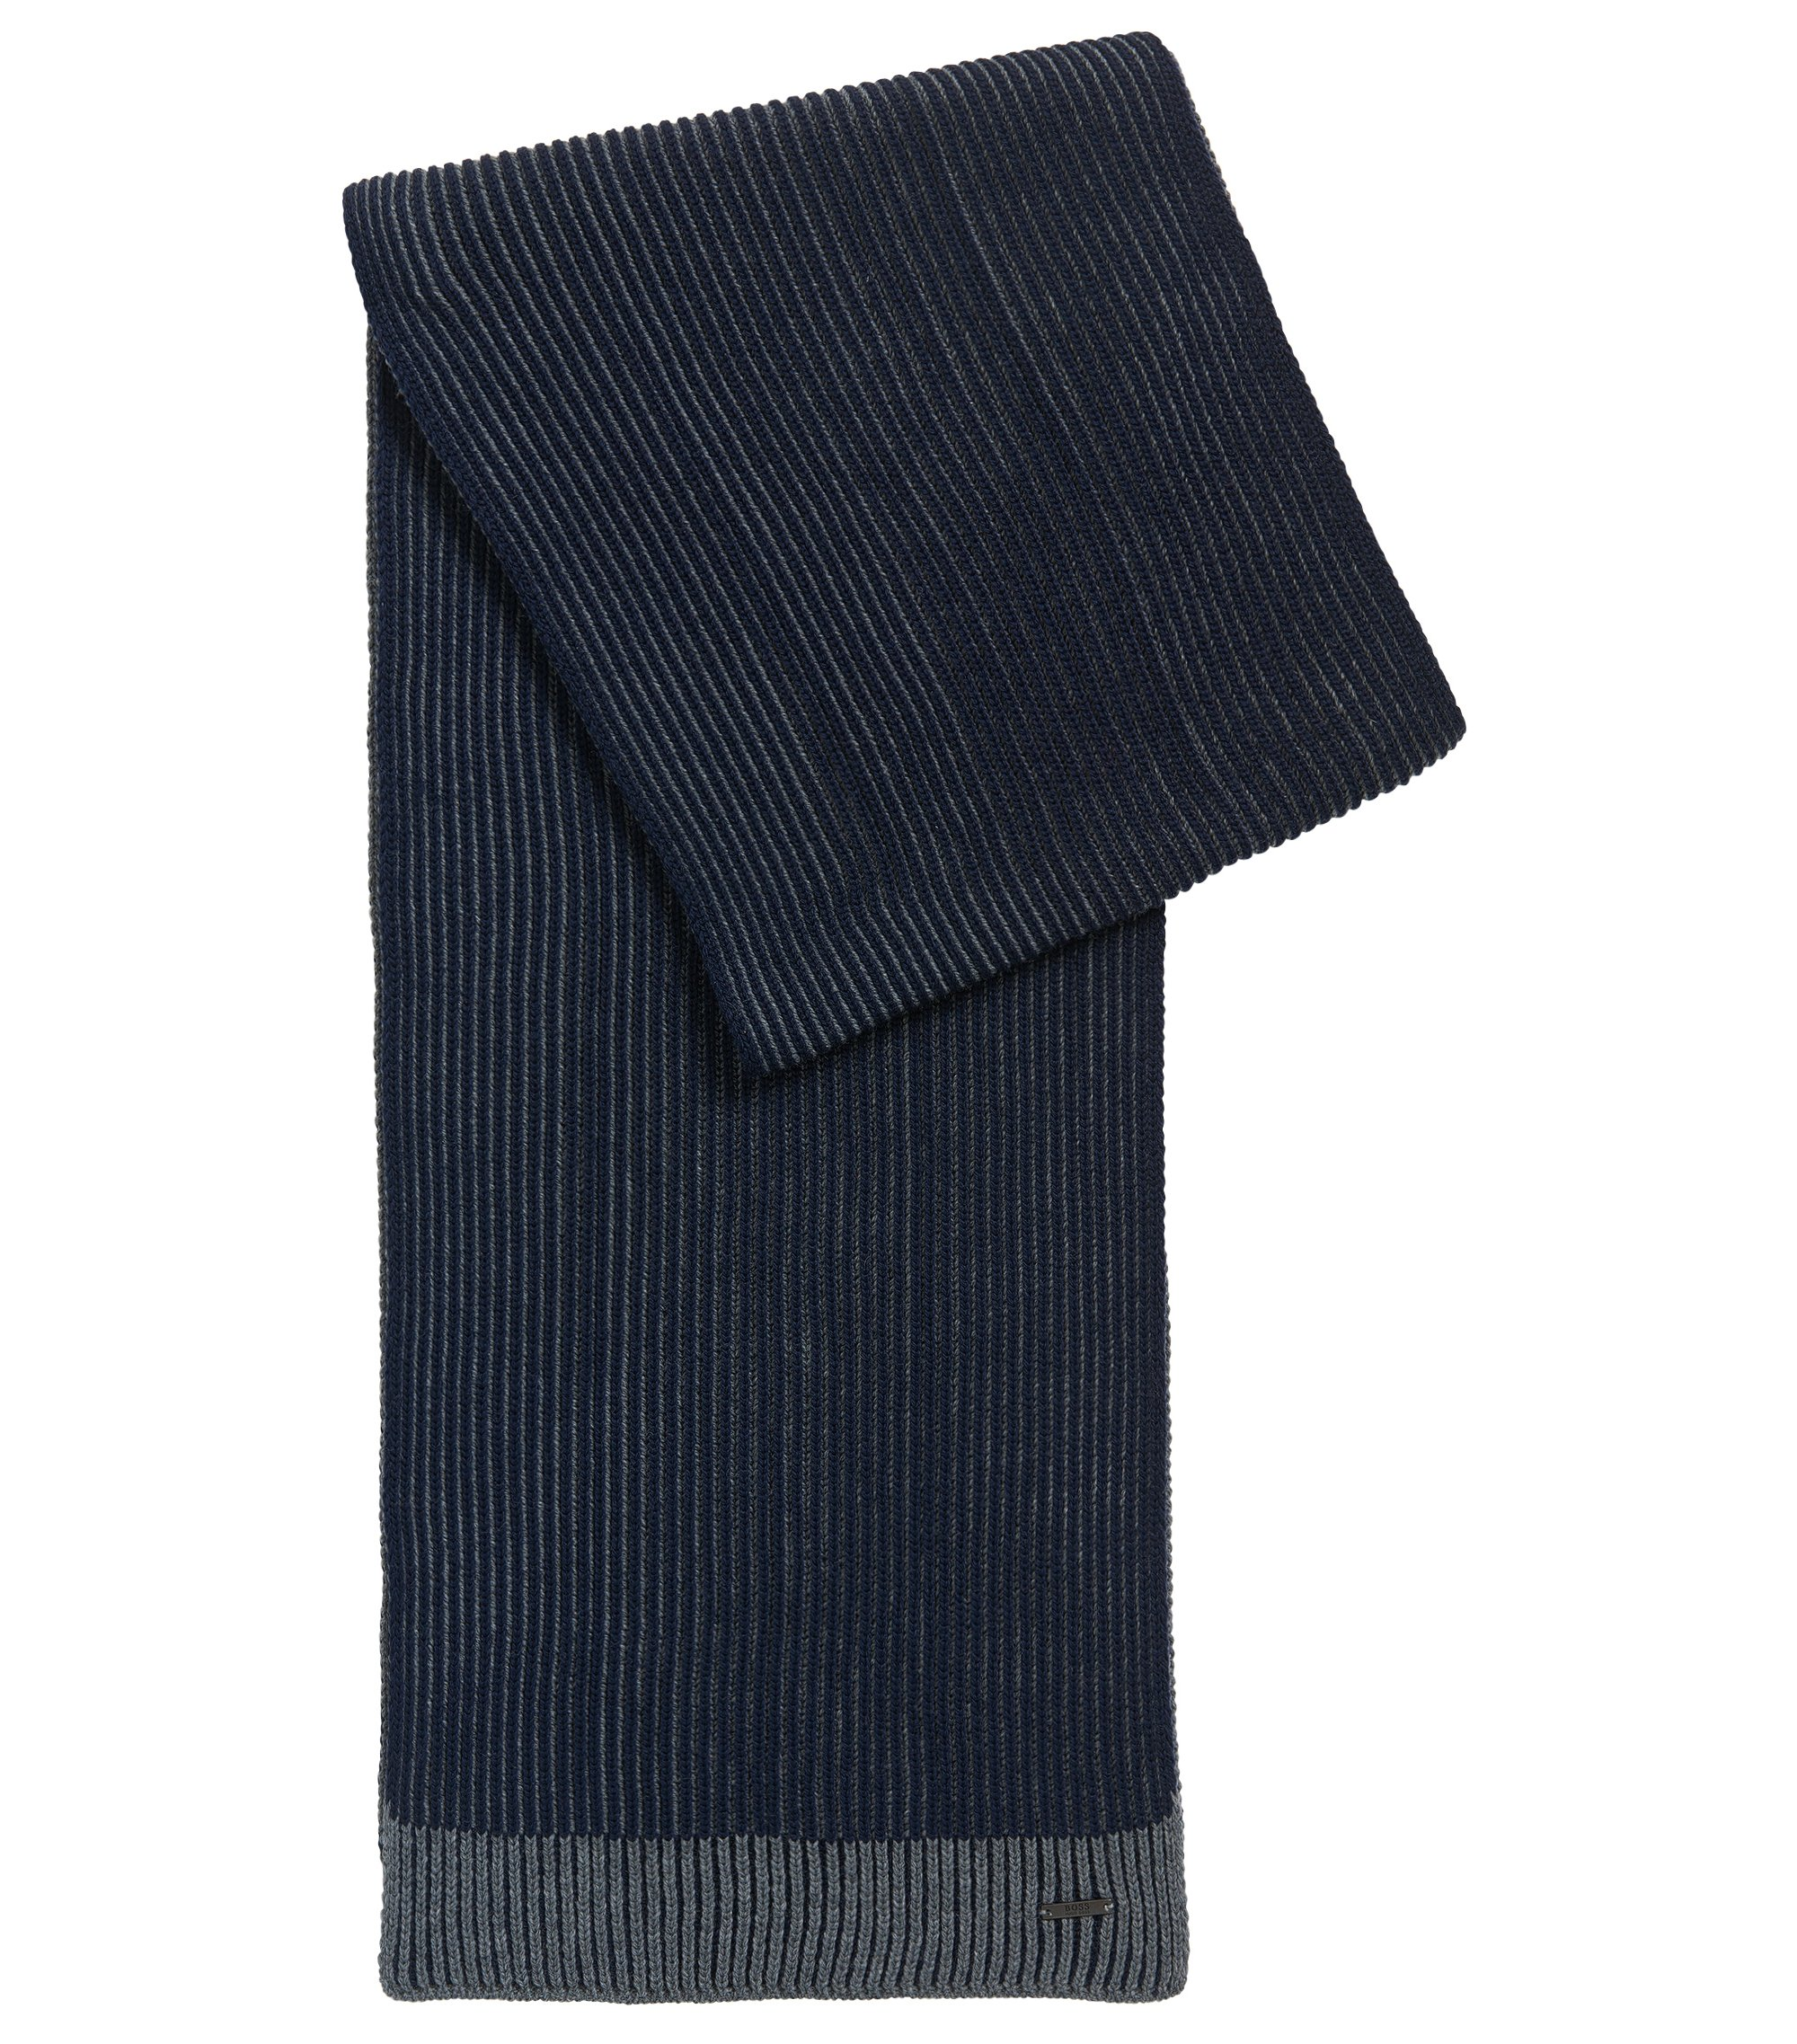 Textured Merino Wool Scarf | Balios WS, Dark Blue